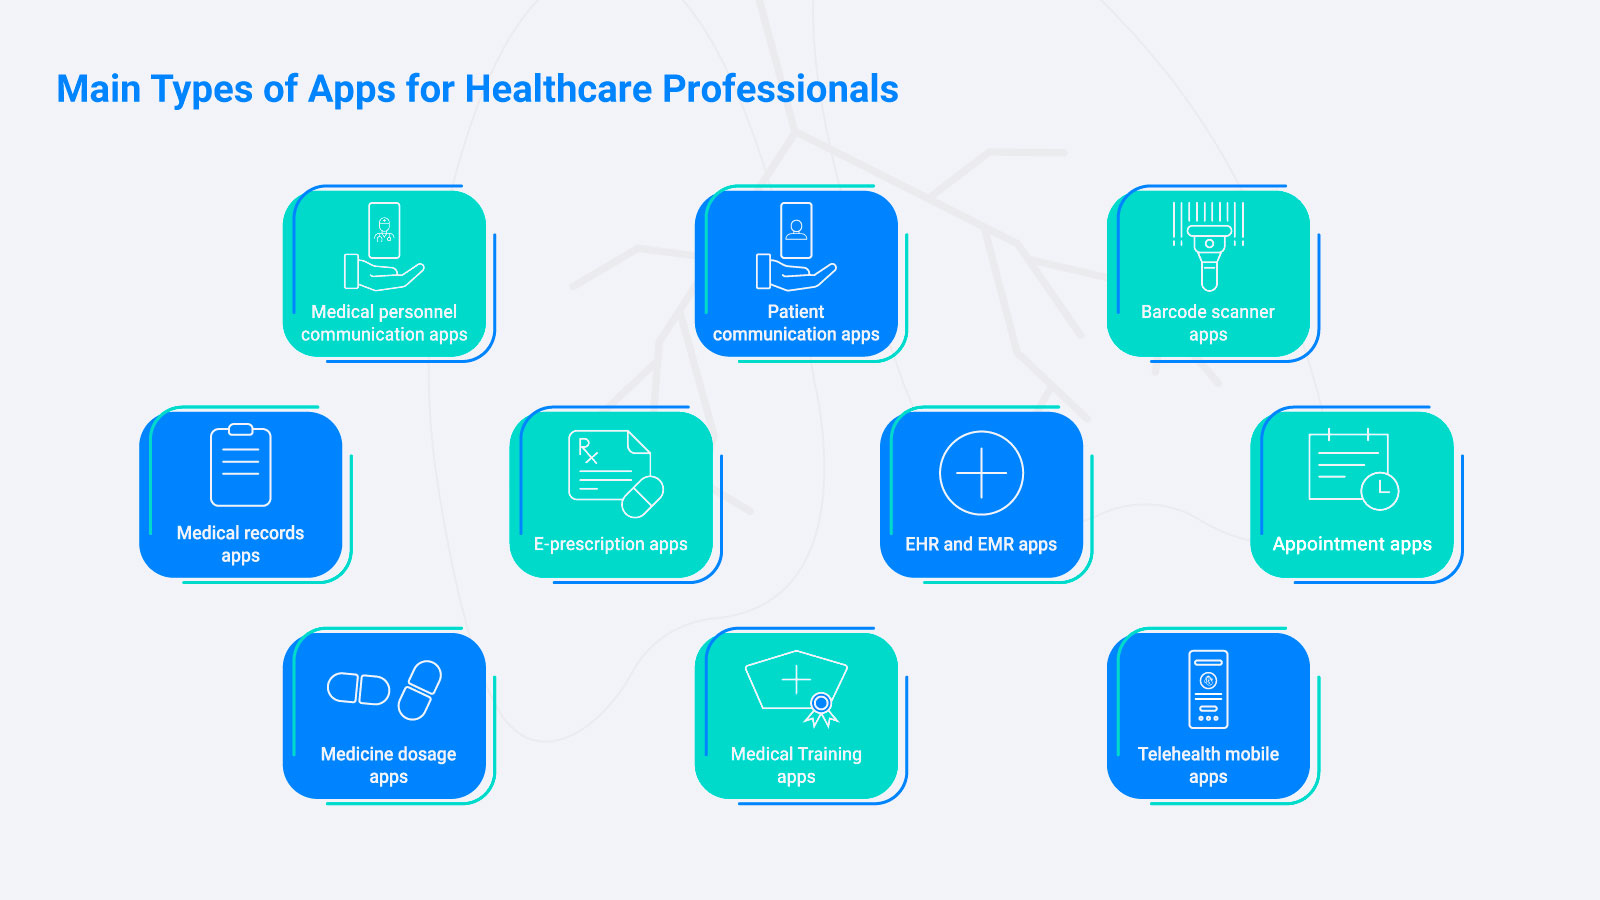 Mobile apps for healthcare professionals